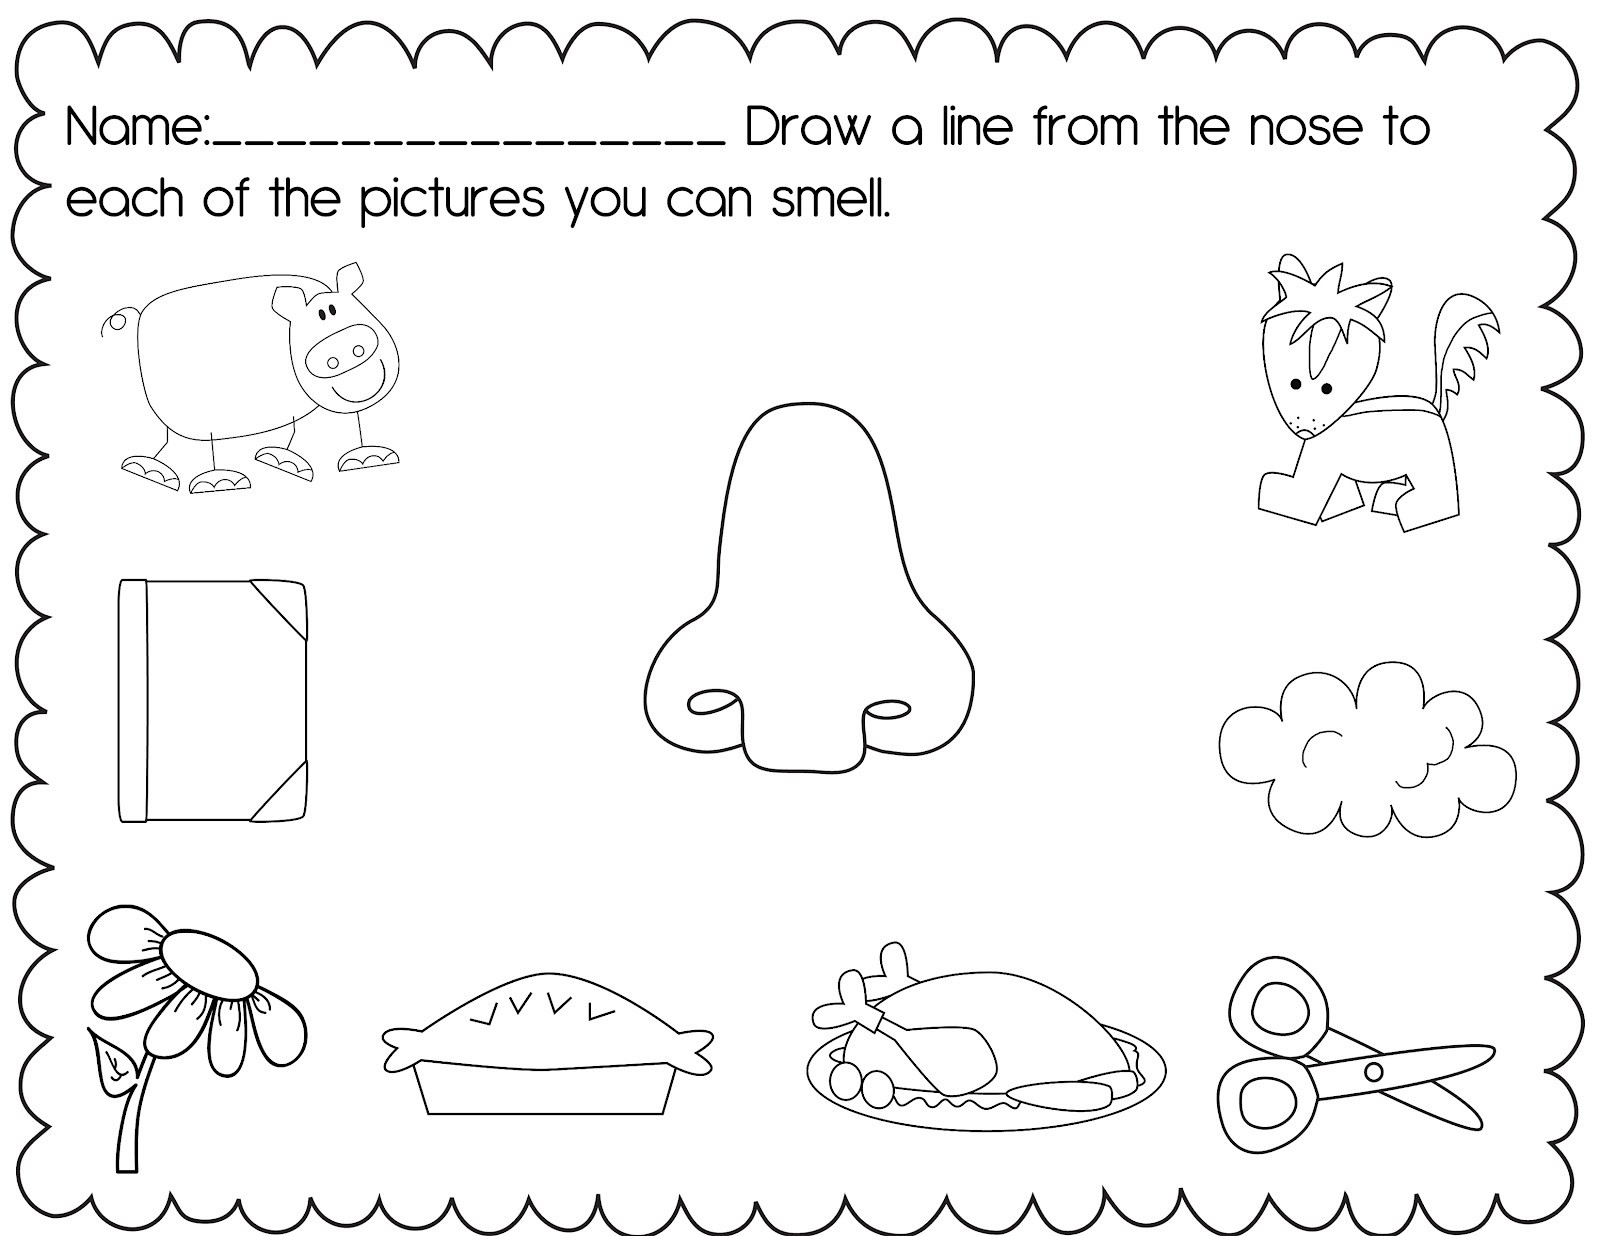 Five Senses Worksheets Preschool Five Sense Worksheet New 692 Five Senses Worksheets for Pre K